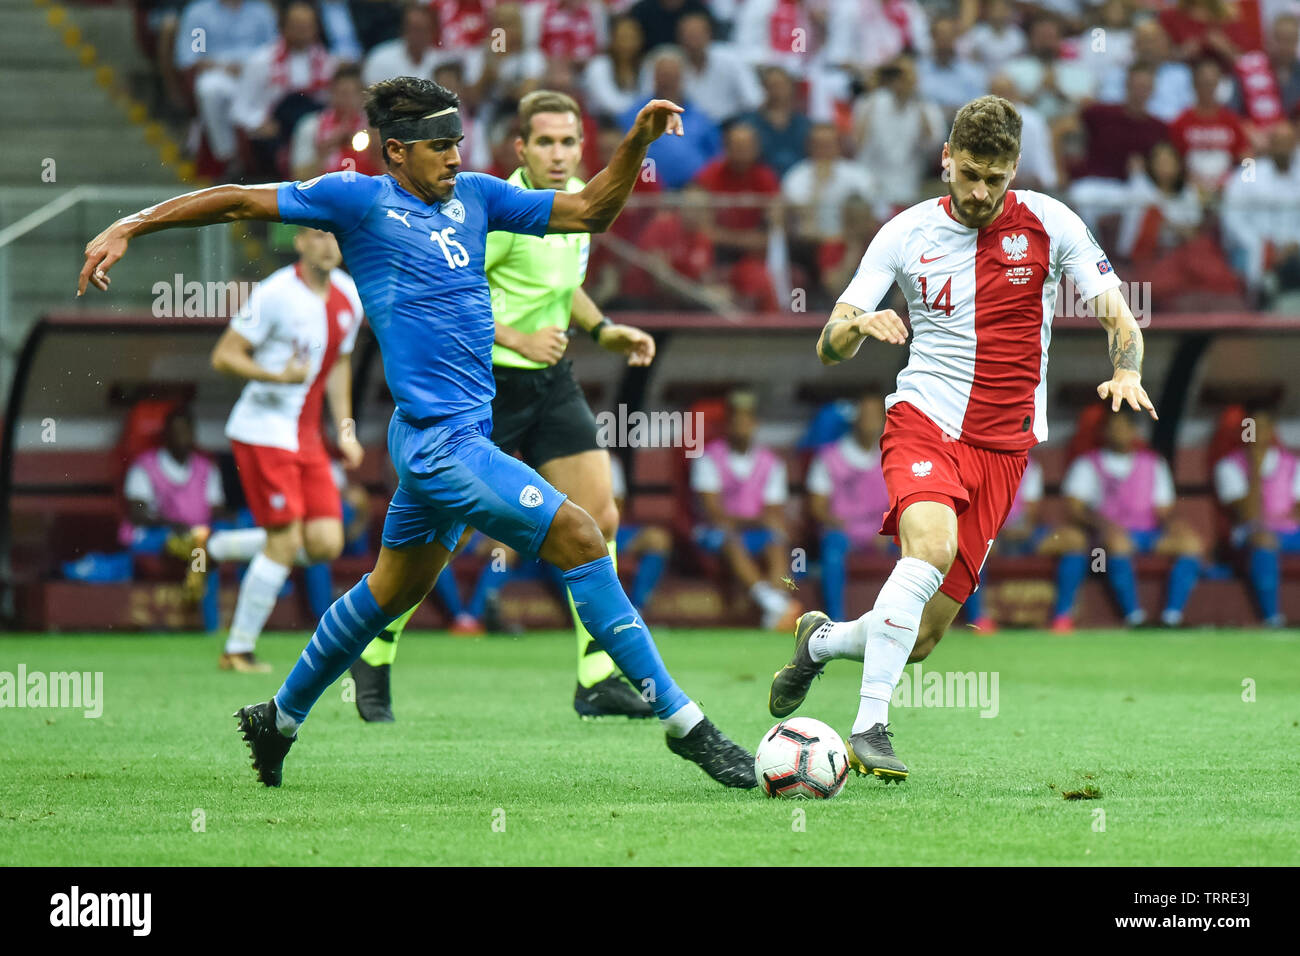 WARSAW, POLAND - JUNE 10, 2019: Qualifications Euro 2020  match Poland - Israel 4:0. In action Dor Peretz (L) and Mateusz Klich (R). - Stock Image